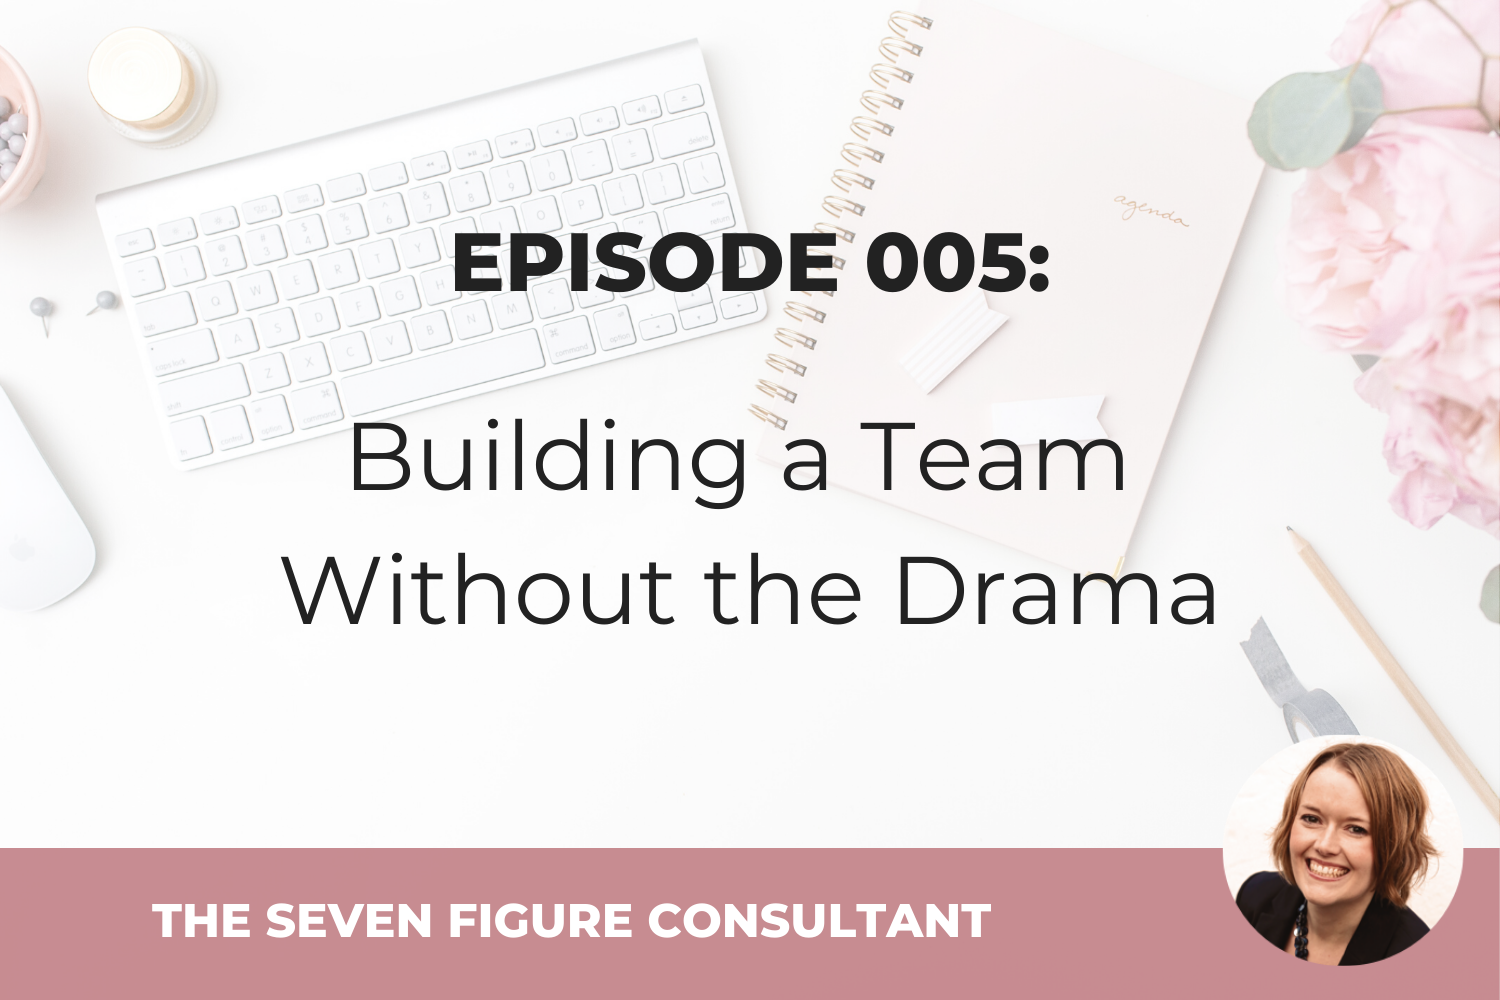 Episode 005: Building a Team Without the Drama